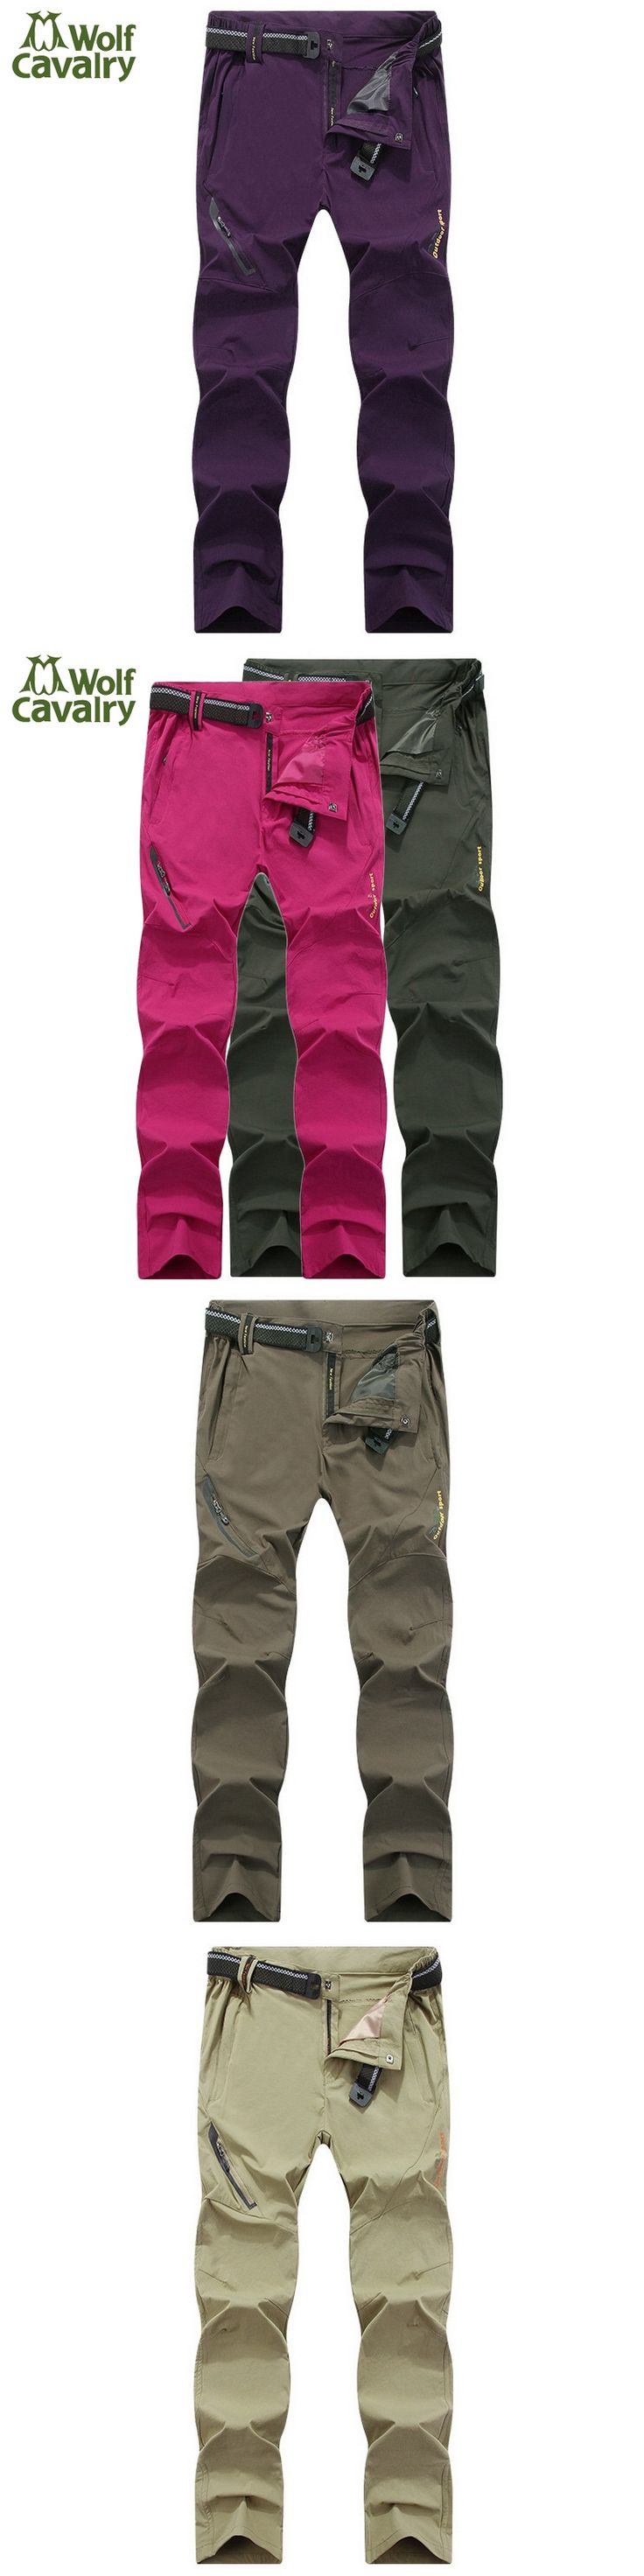 CavalryWalf High Stretch Quick Dry Hiking Pants Women Summer Travel Camping Sport Trousers Trekking Cycling Outdoor Pants,AW006